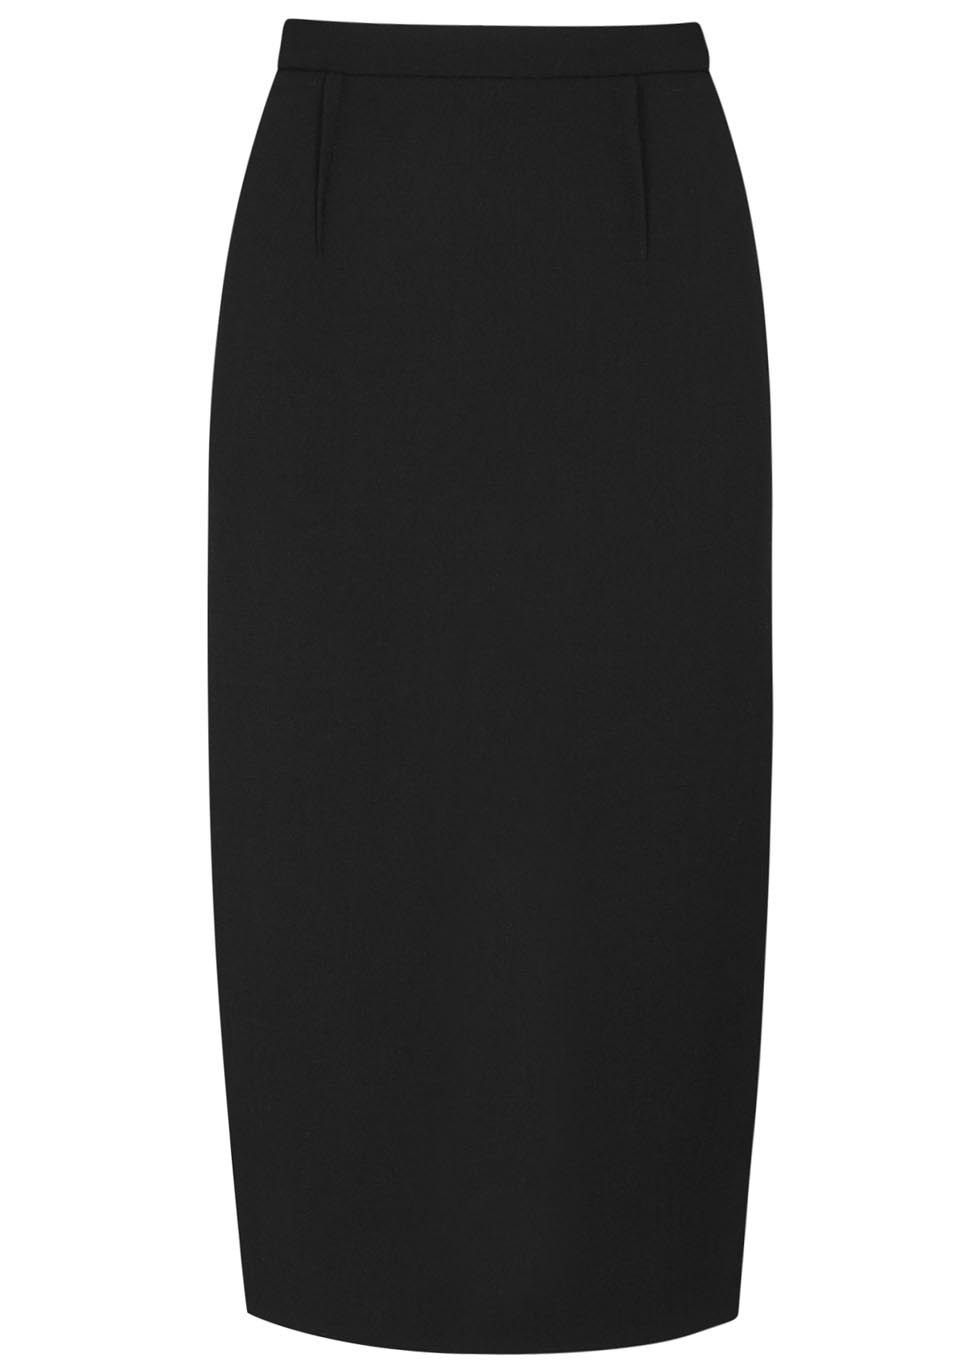 Arreton Black Wool Crepe Pencil Skirt - length: below the knee; pattern: plain; style: pencil; fit: tailored/fitted; waist: high rise; predominant colour: black; occasions: evening, work; fibres: wool - 100%; pattern type: fabric; texture group: woven light midweight; season: a/w 2015; wardrobe: basic